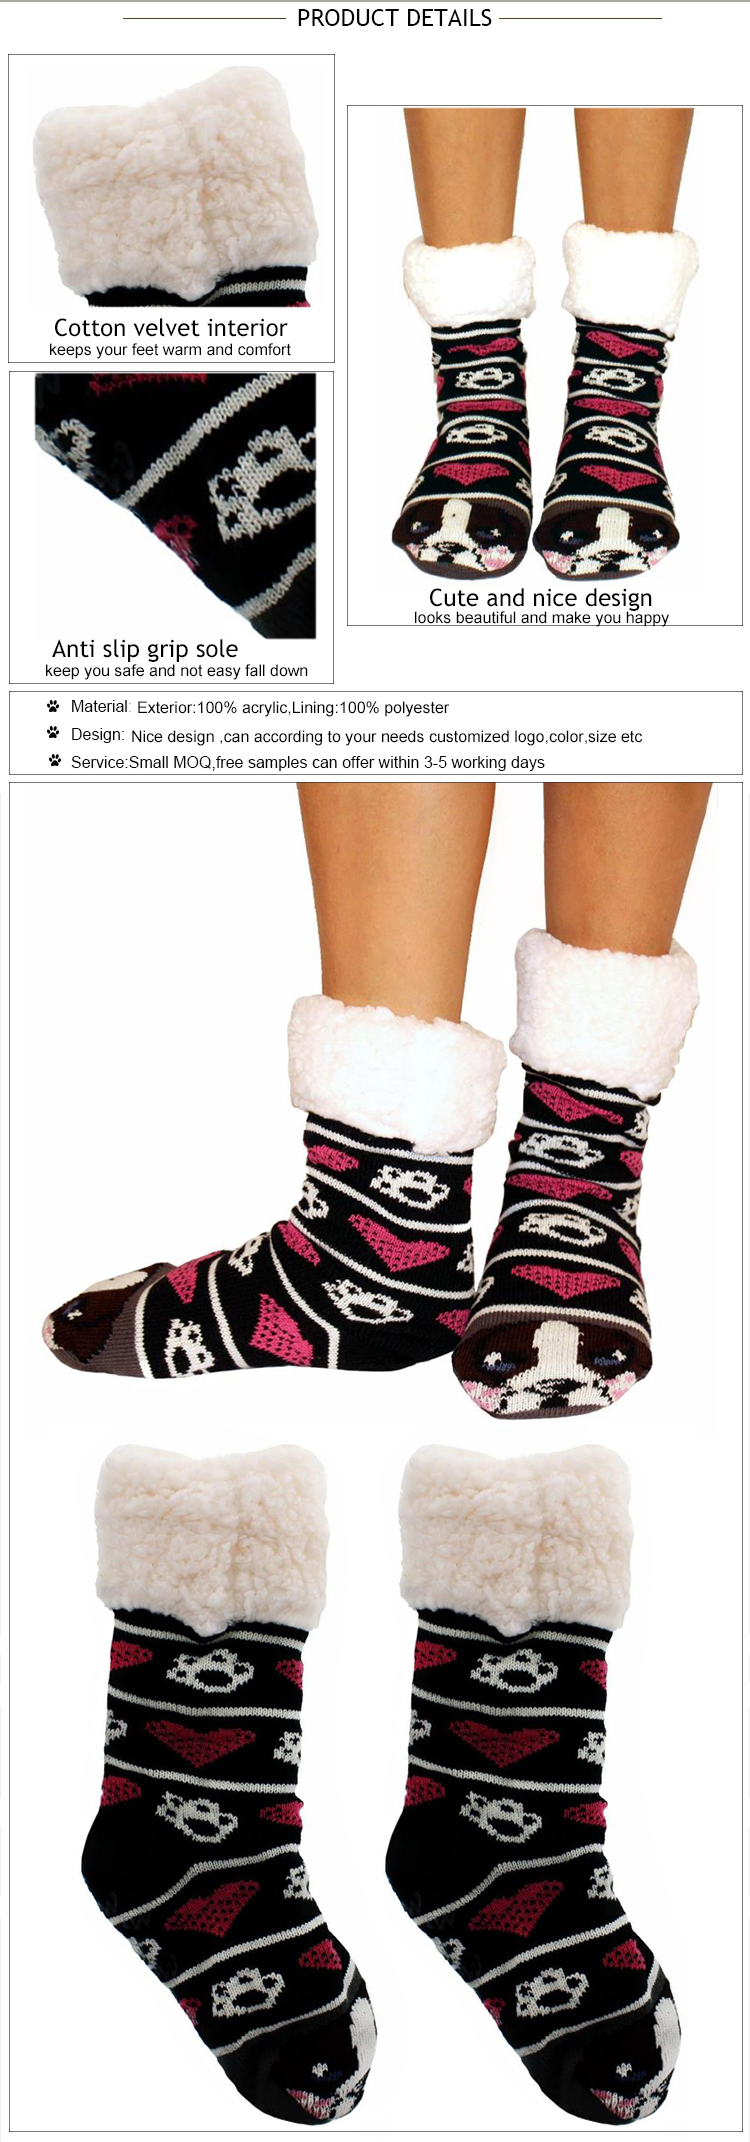 No MOQ Print Your Own Logo Towel Little Feet Rubber Sole Grippy Non Skid Anti Slip Yoga Socks